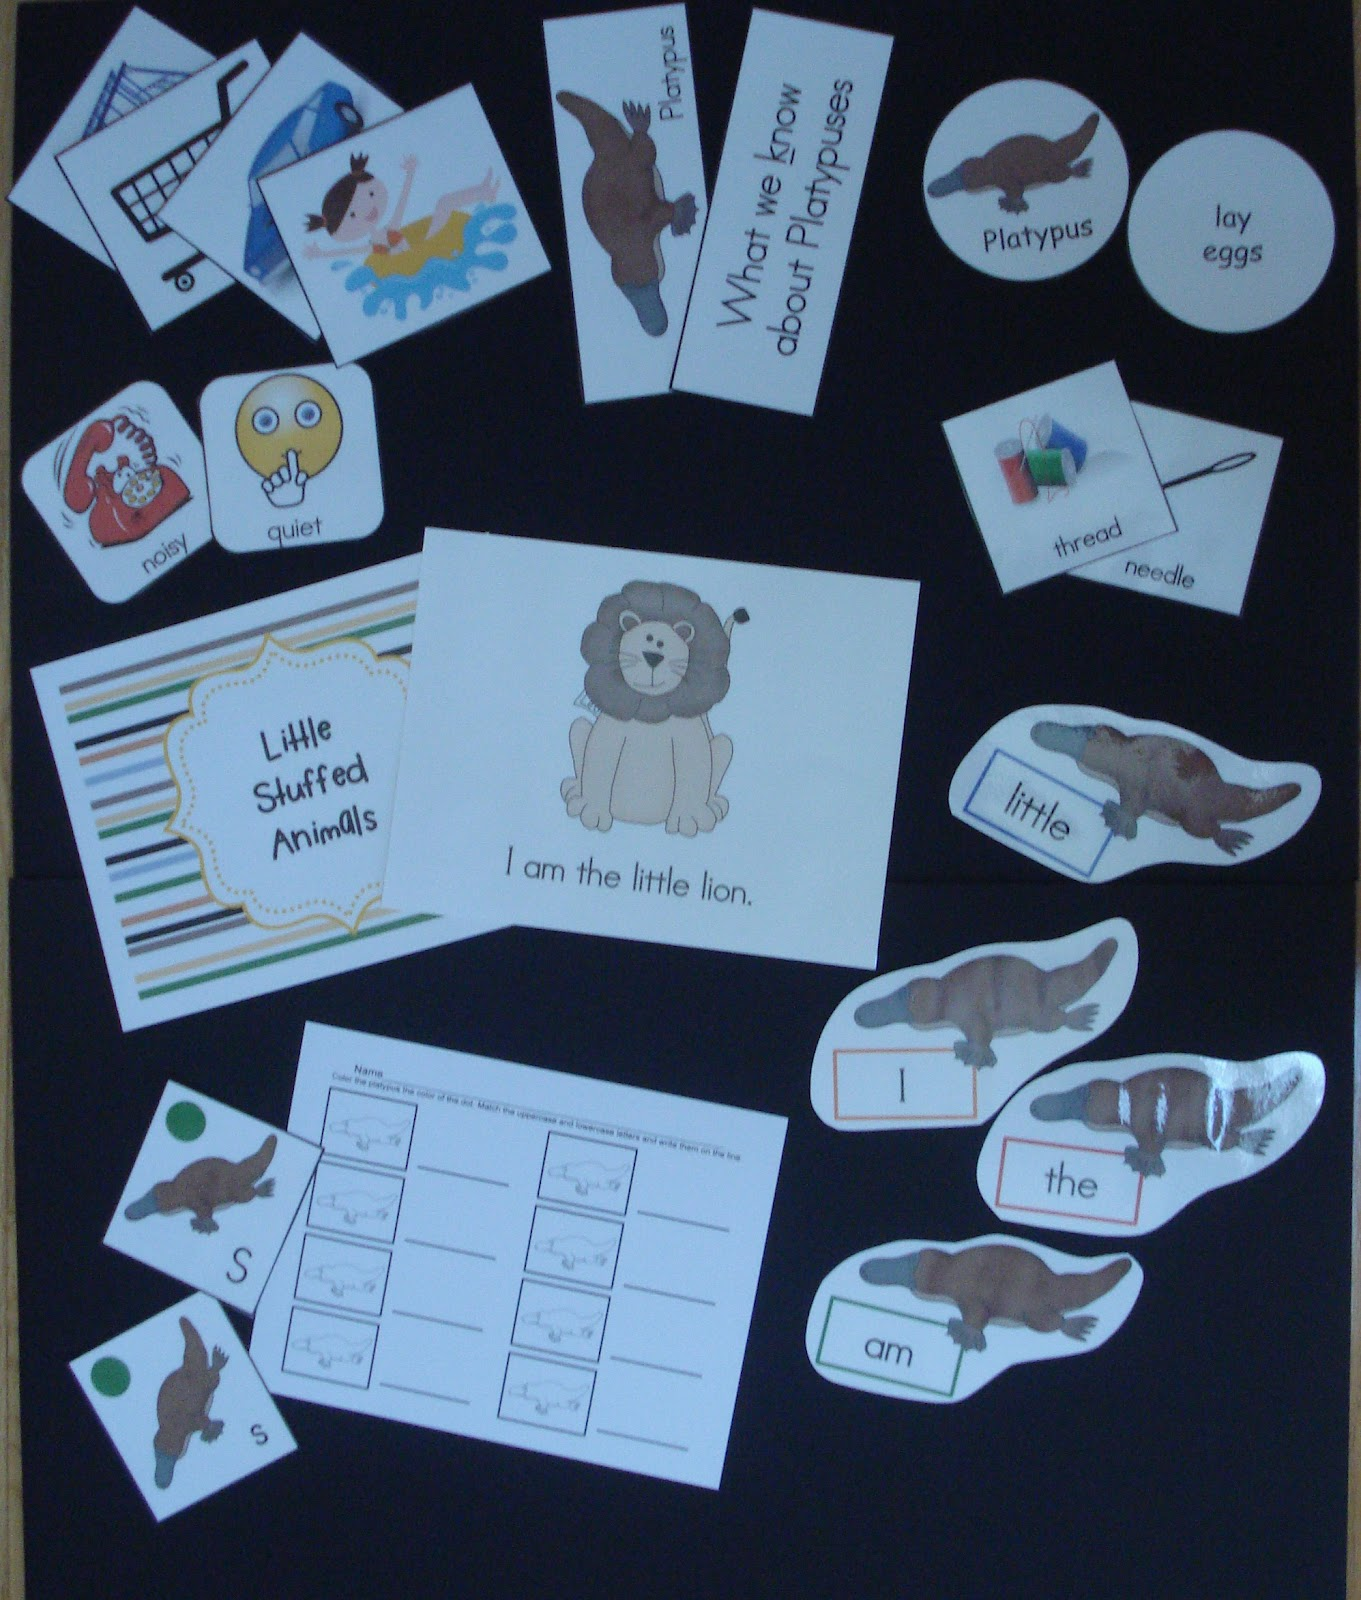 kindertrips: August 2012